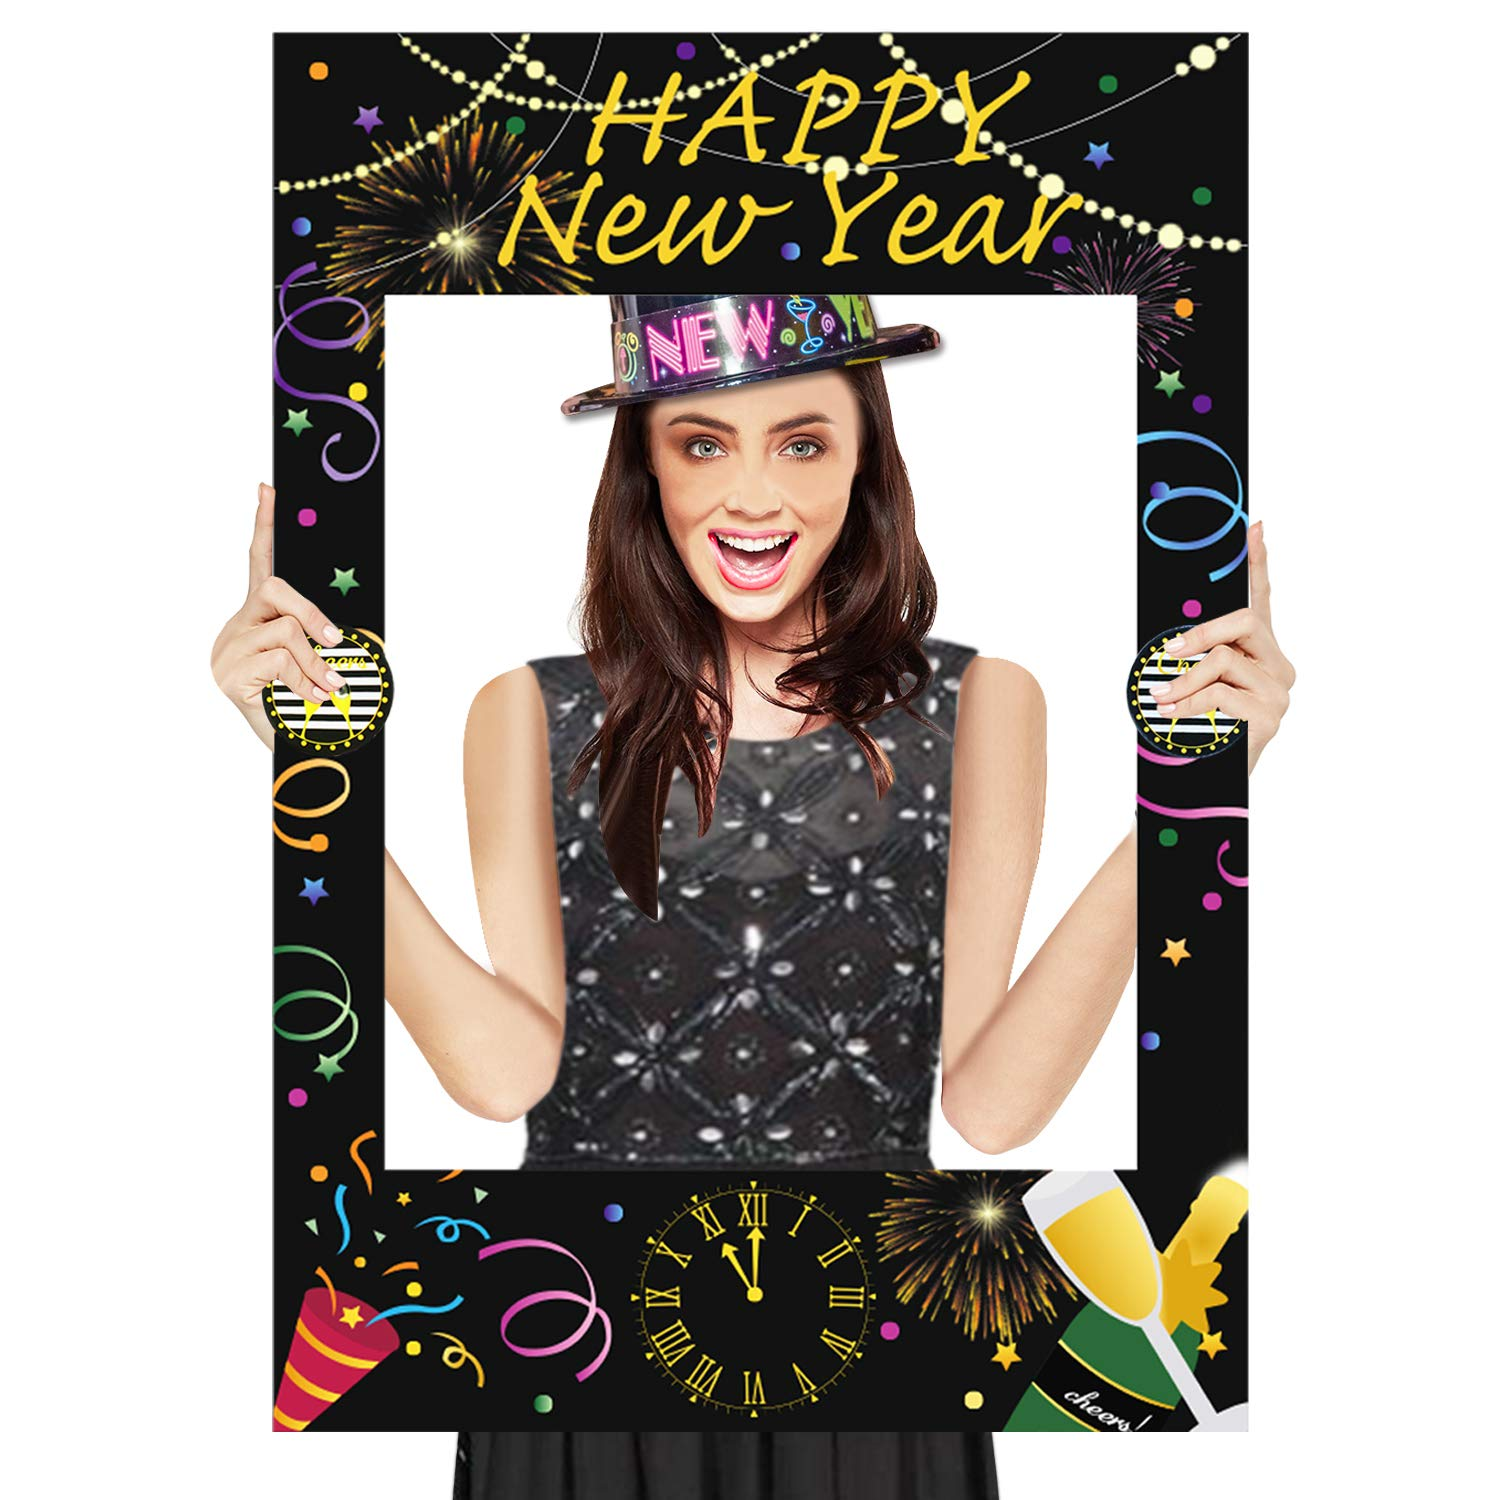 Happy New Year Photo Booth Props Frame - New Years Eve Photo Booth Frame - Cheers to 2019 Party Supplies